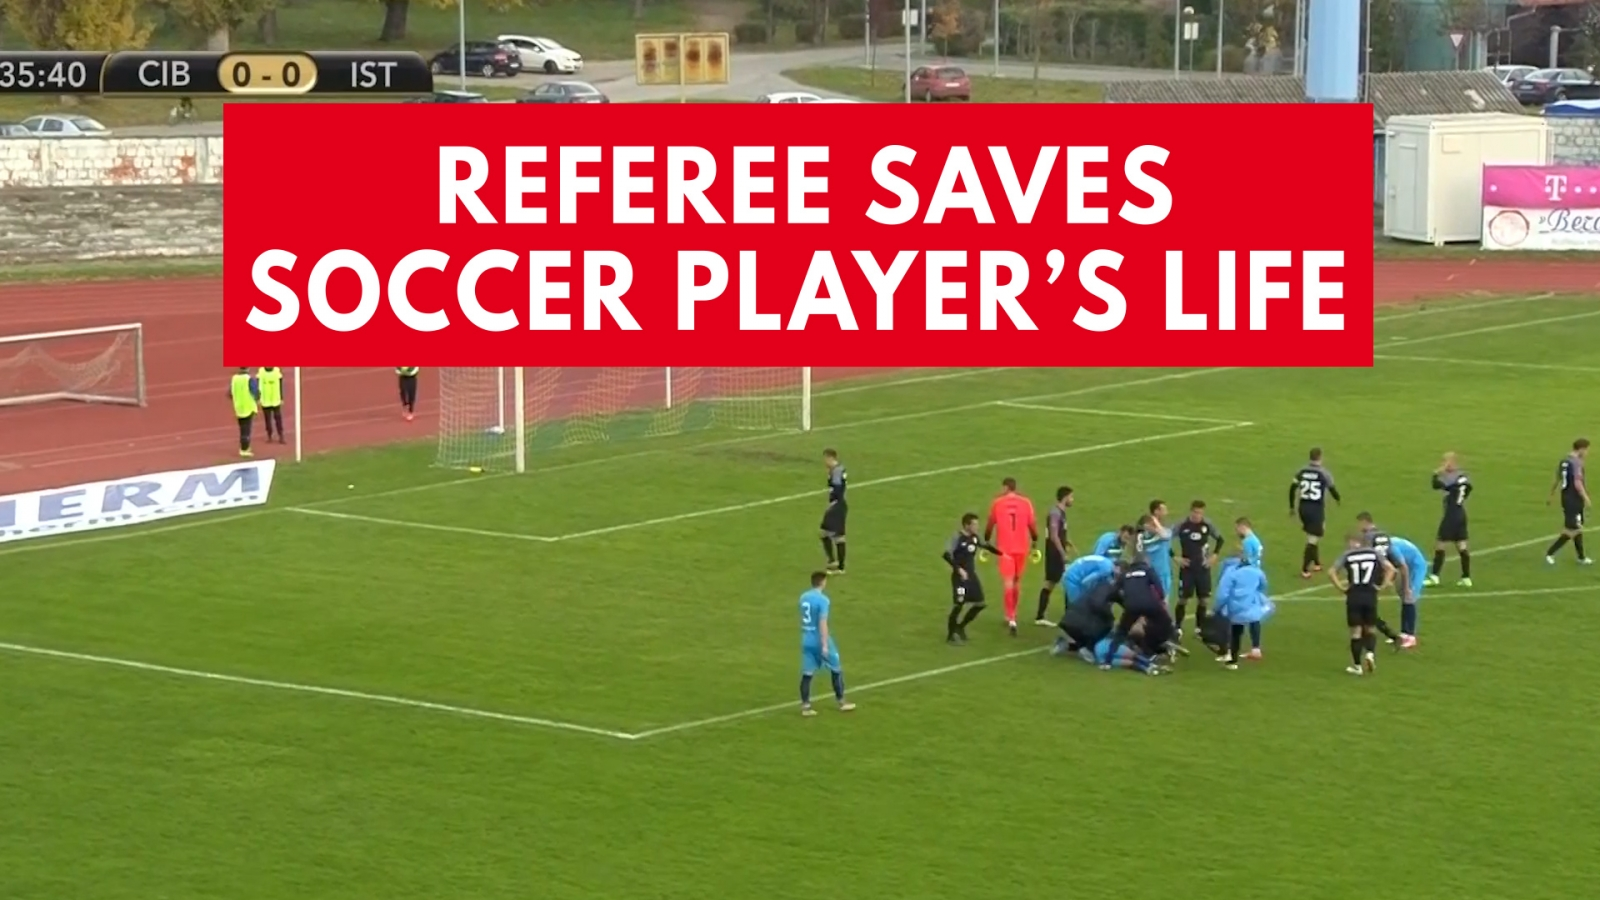 Referee Saves Soccer Player's Life